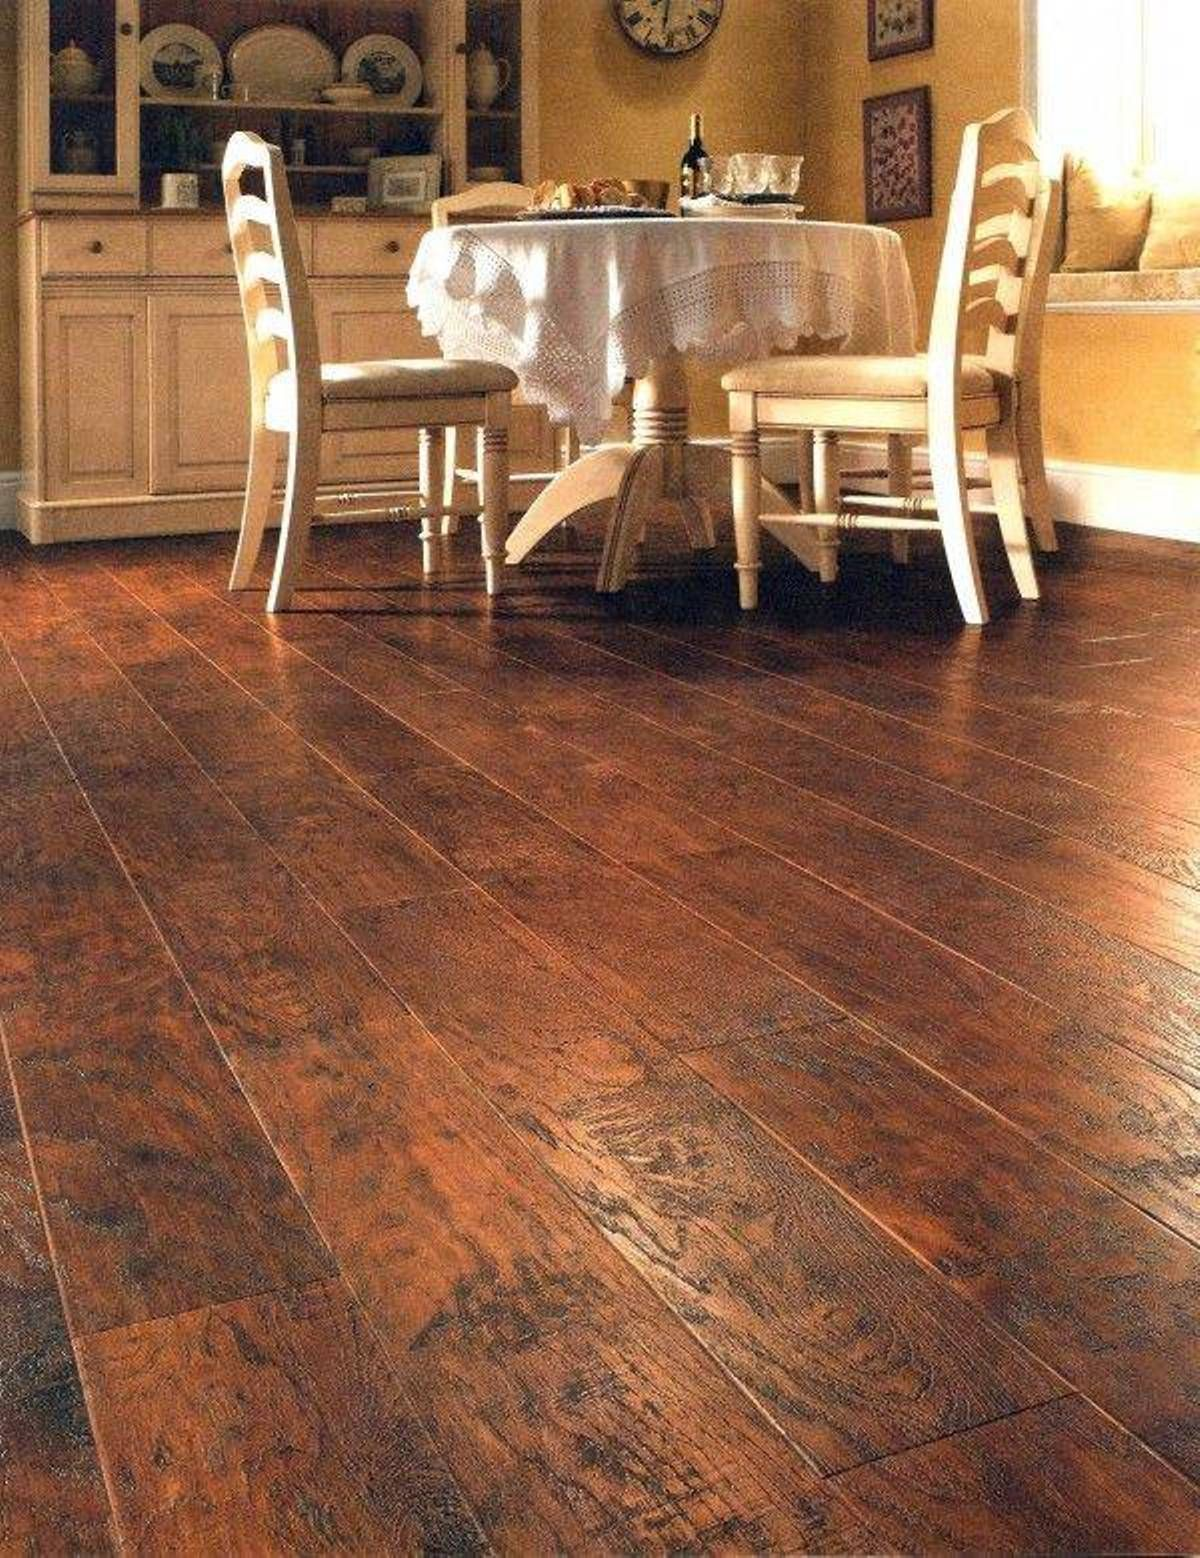 Dining Room Tile Options | Room tiles, Tile flooring and Kitchen dining